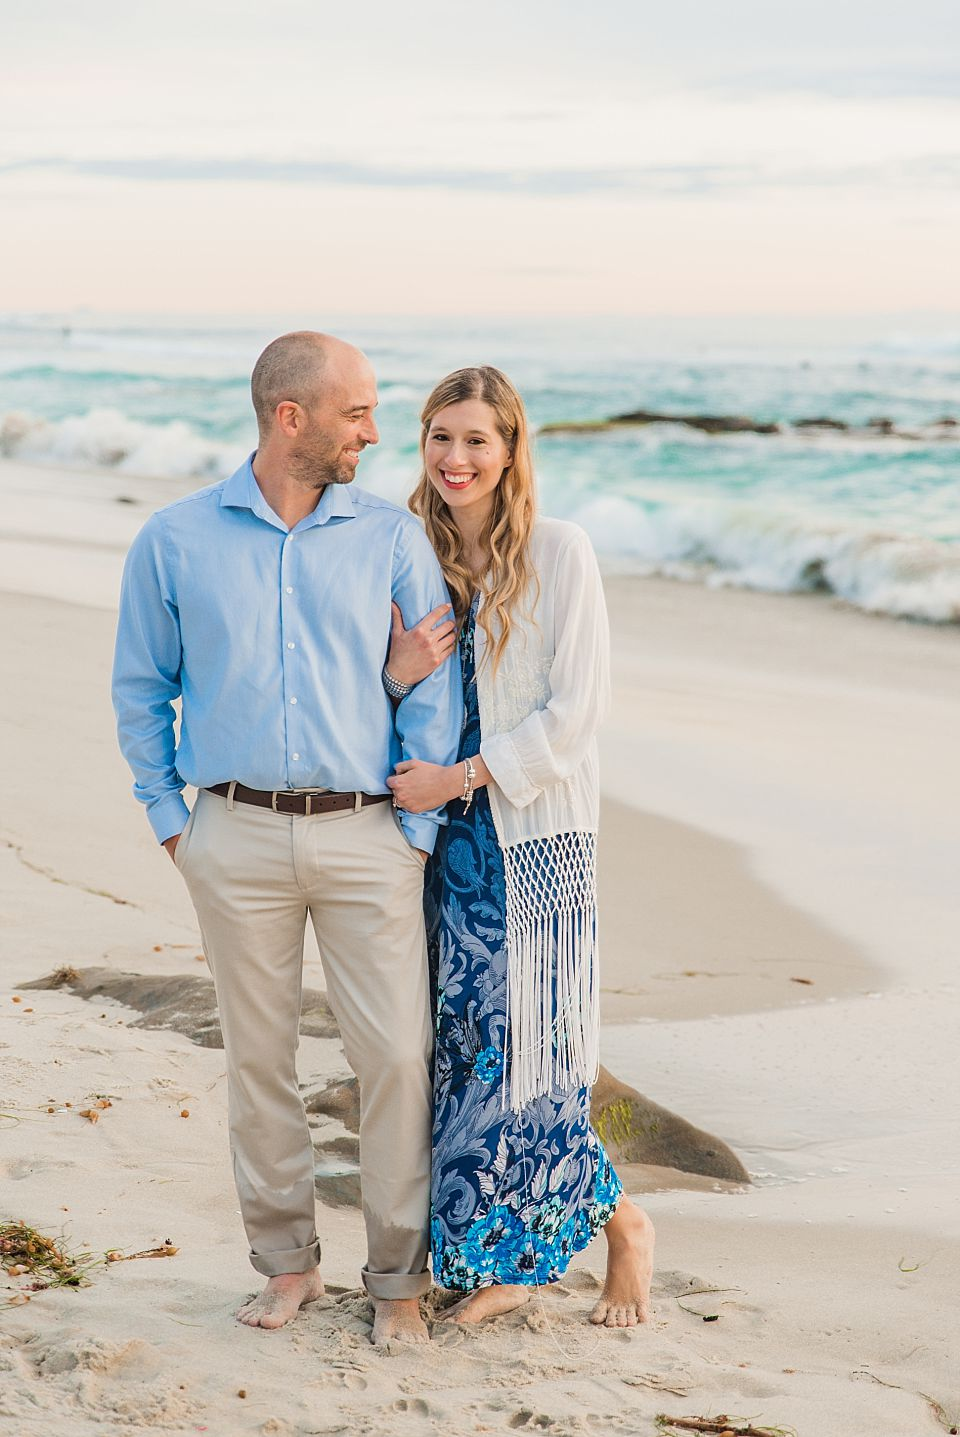 san diego engagement photo ideas woman smiling on beach